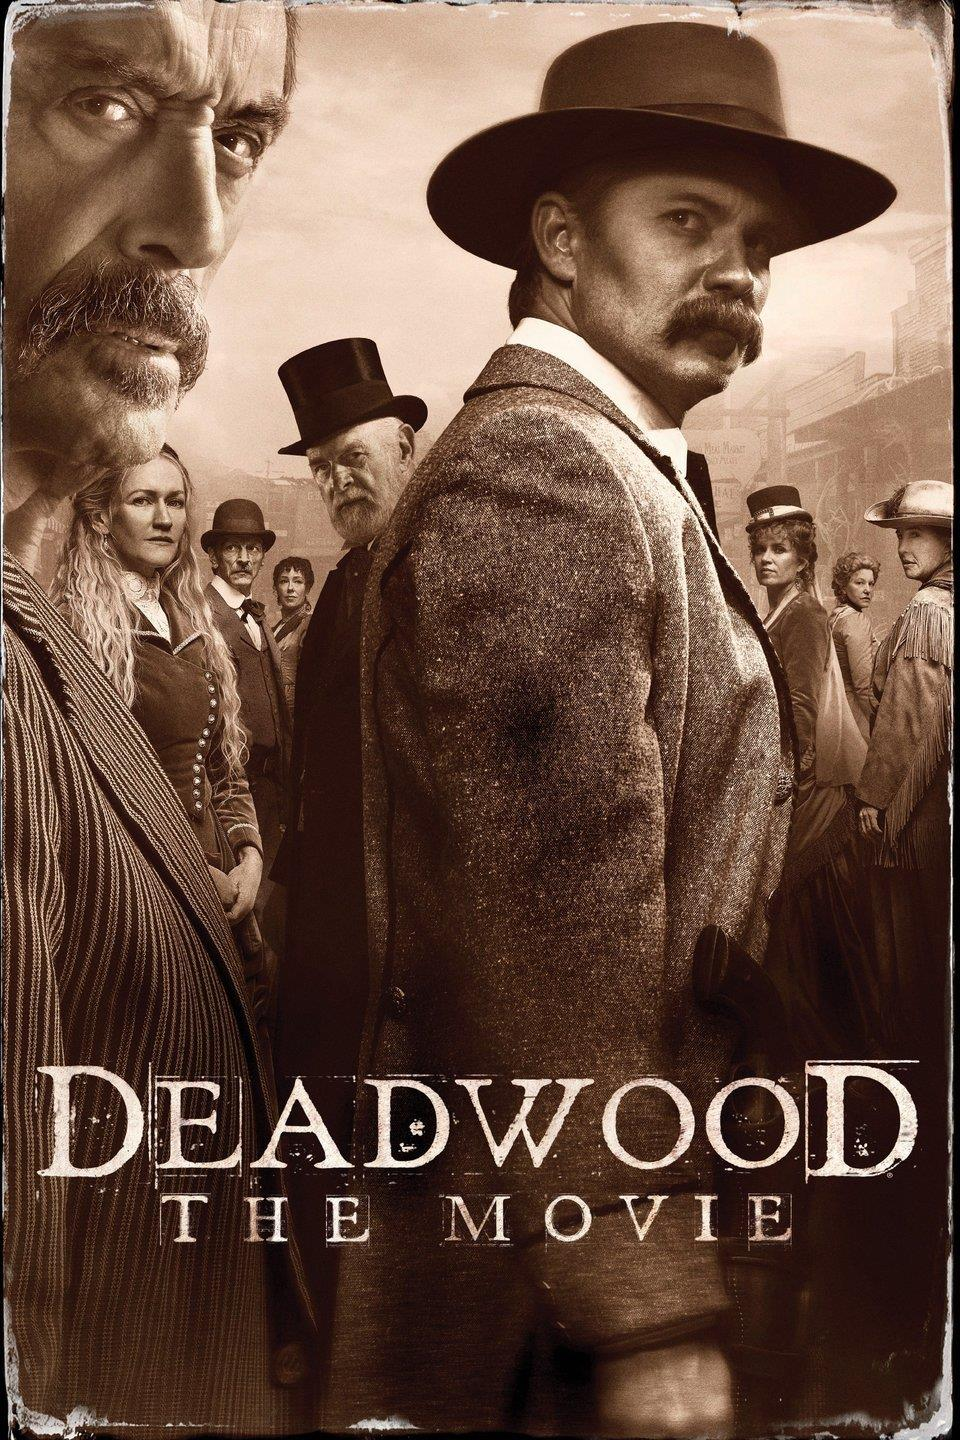 telecharger Deadwood The Movie 2019 FRENCH 720p WEB-DL x264-STVFRV torrent9